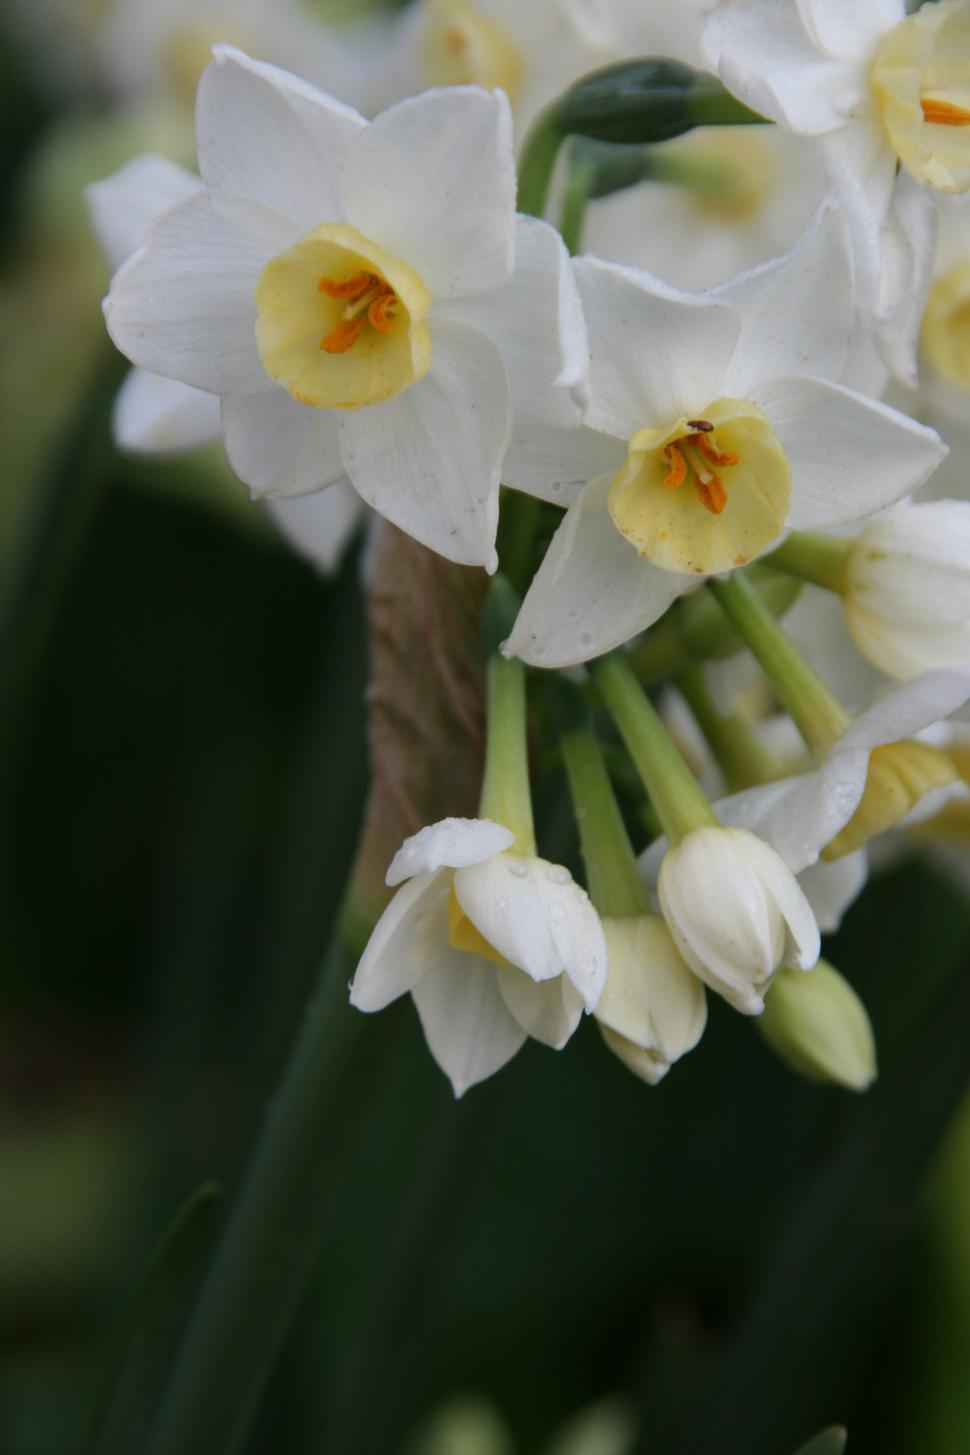 Download Free Stock Photo of narcissus flower